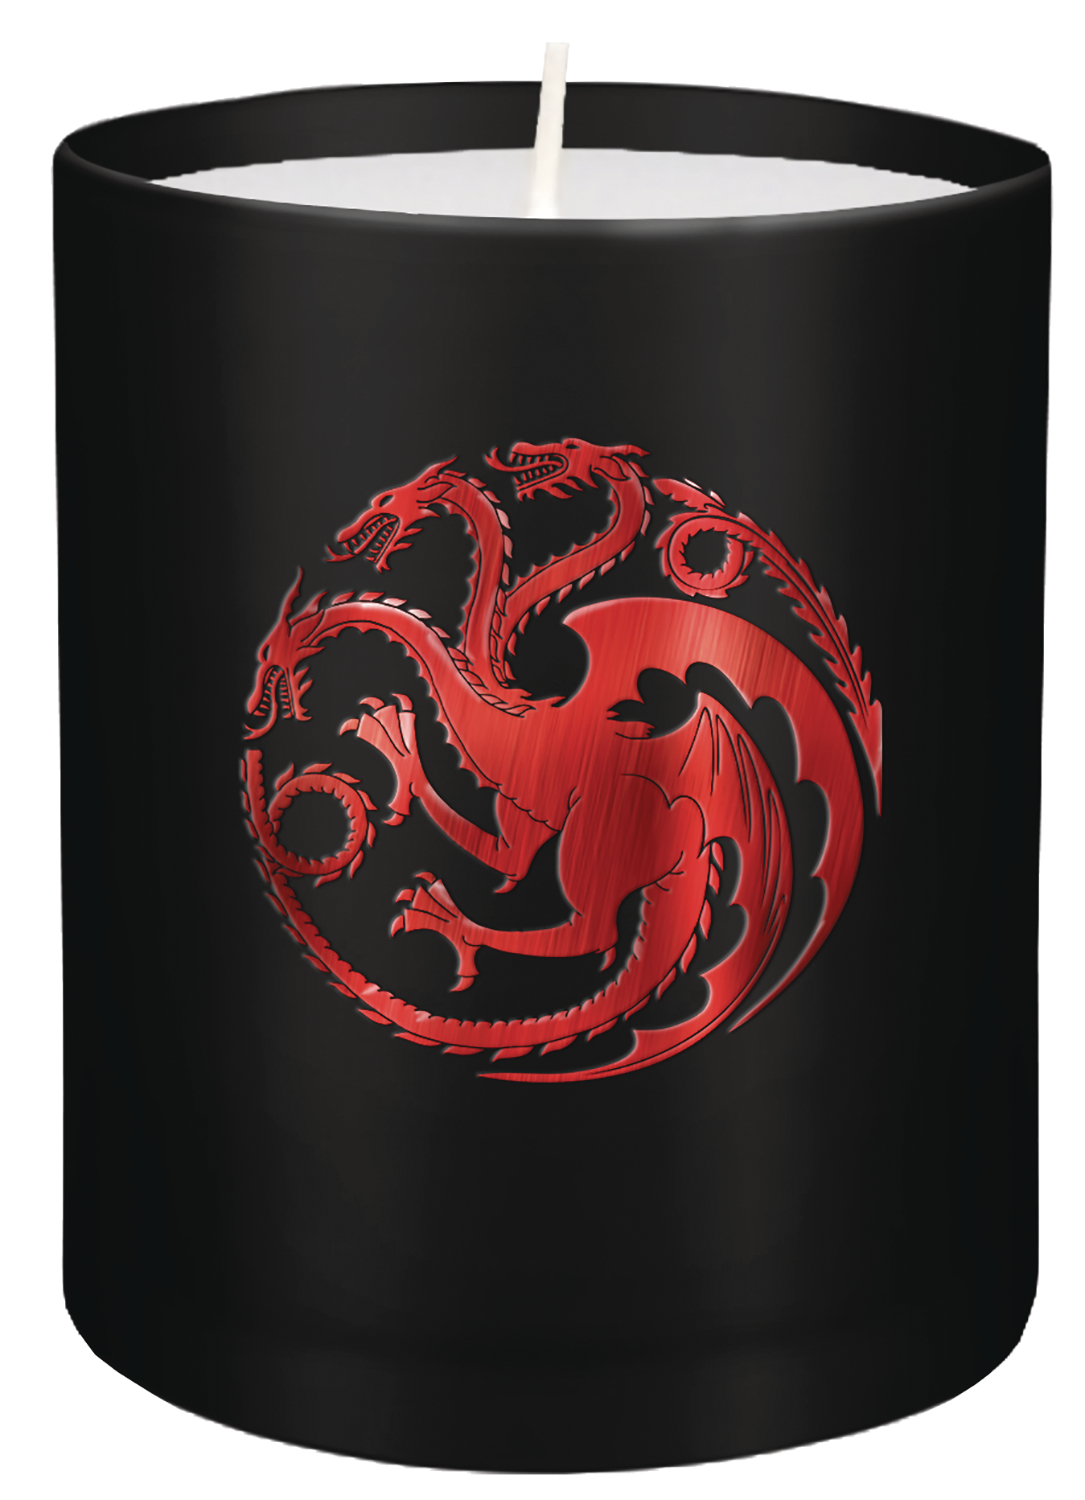 GAME OF THRONES TARGARYEN GLASS CANDLE